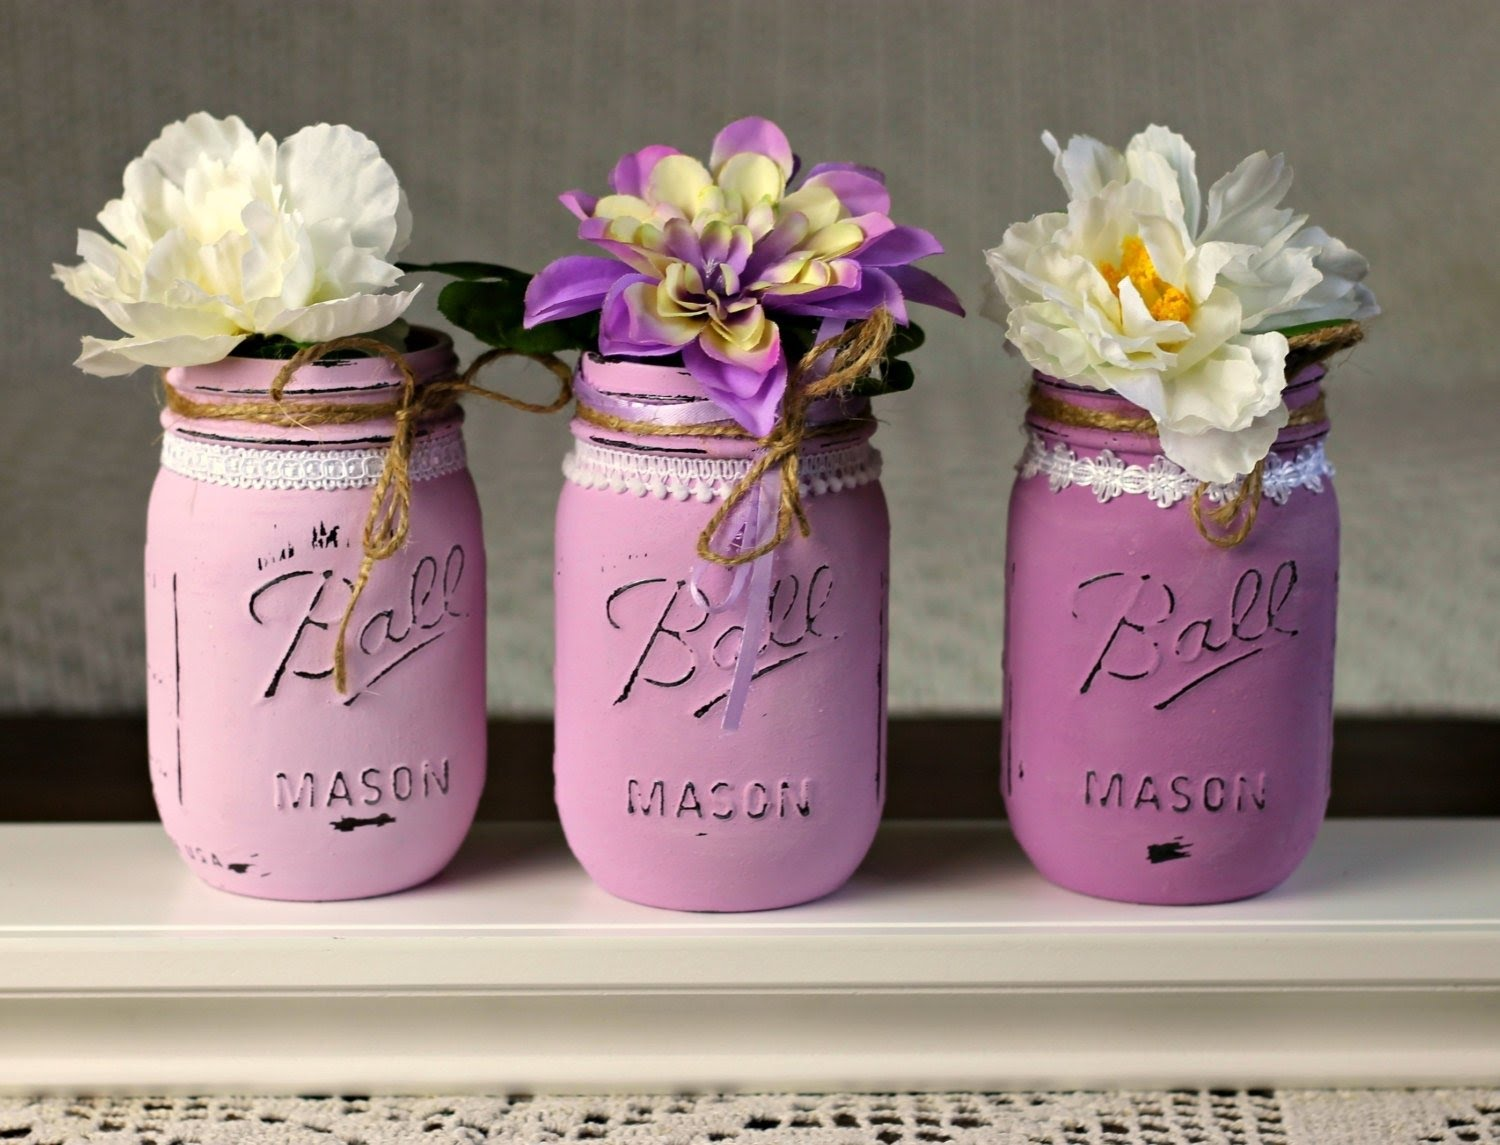 Distressed Antiqued Vintage painted bottles with silk flowers featuring different designs